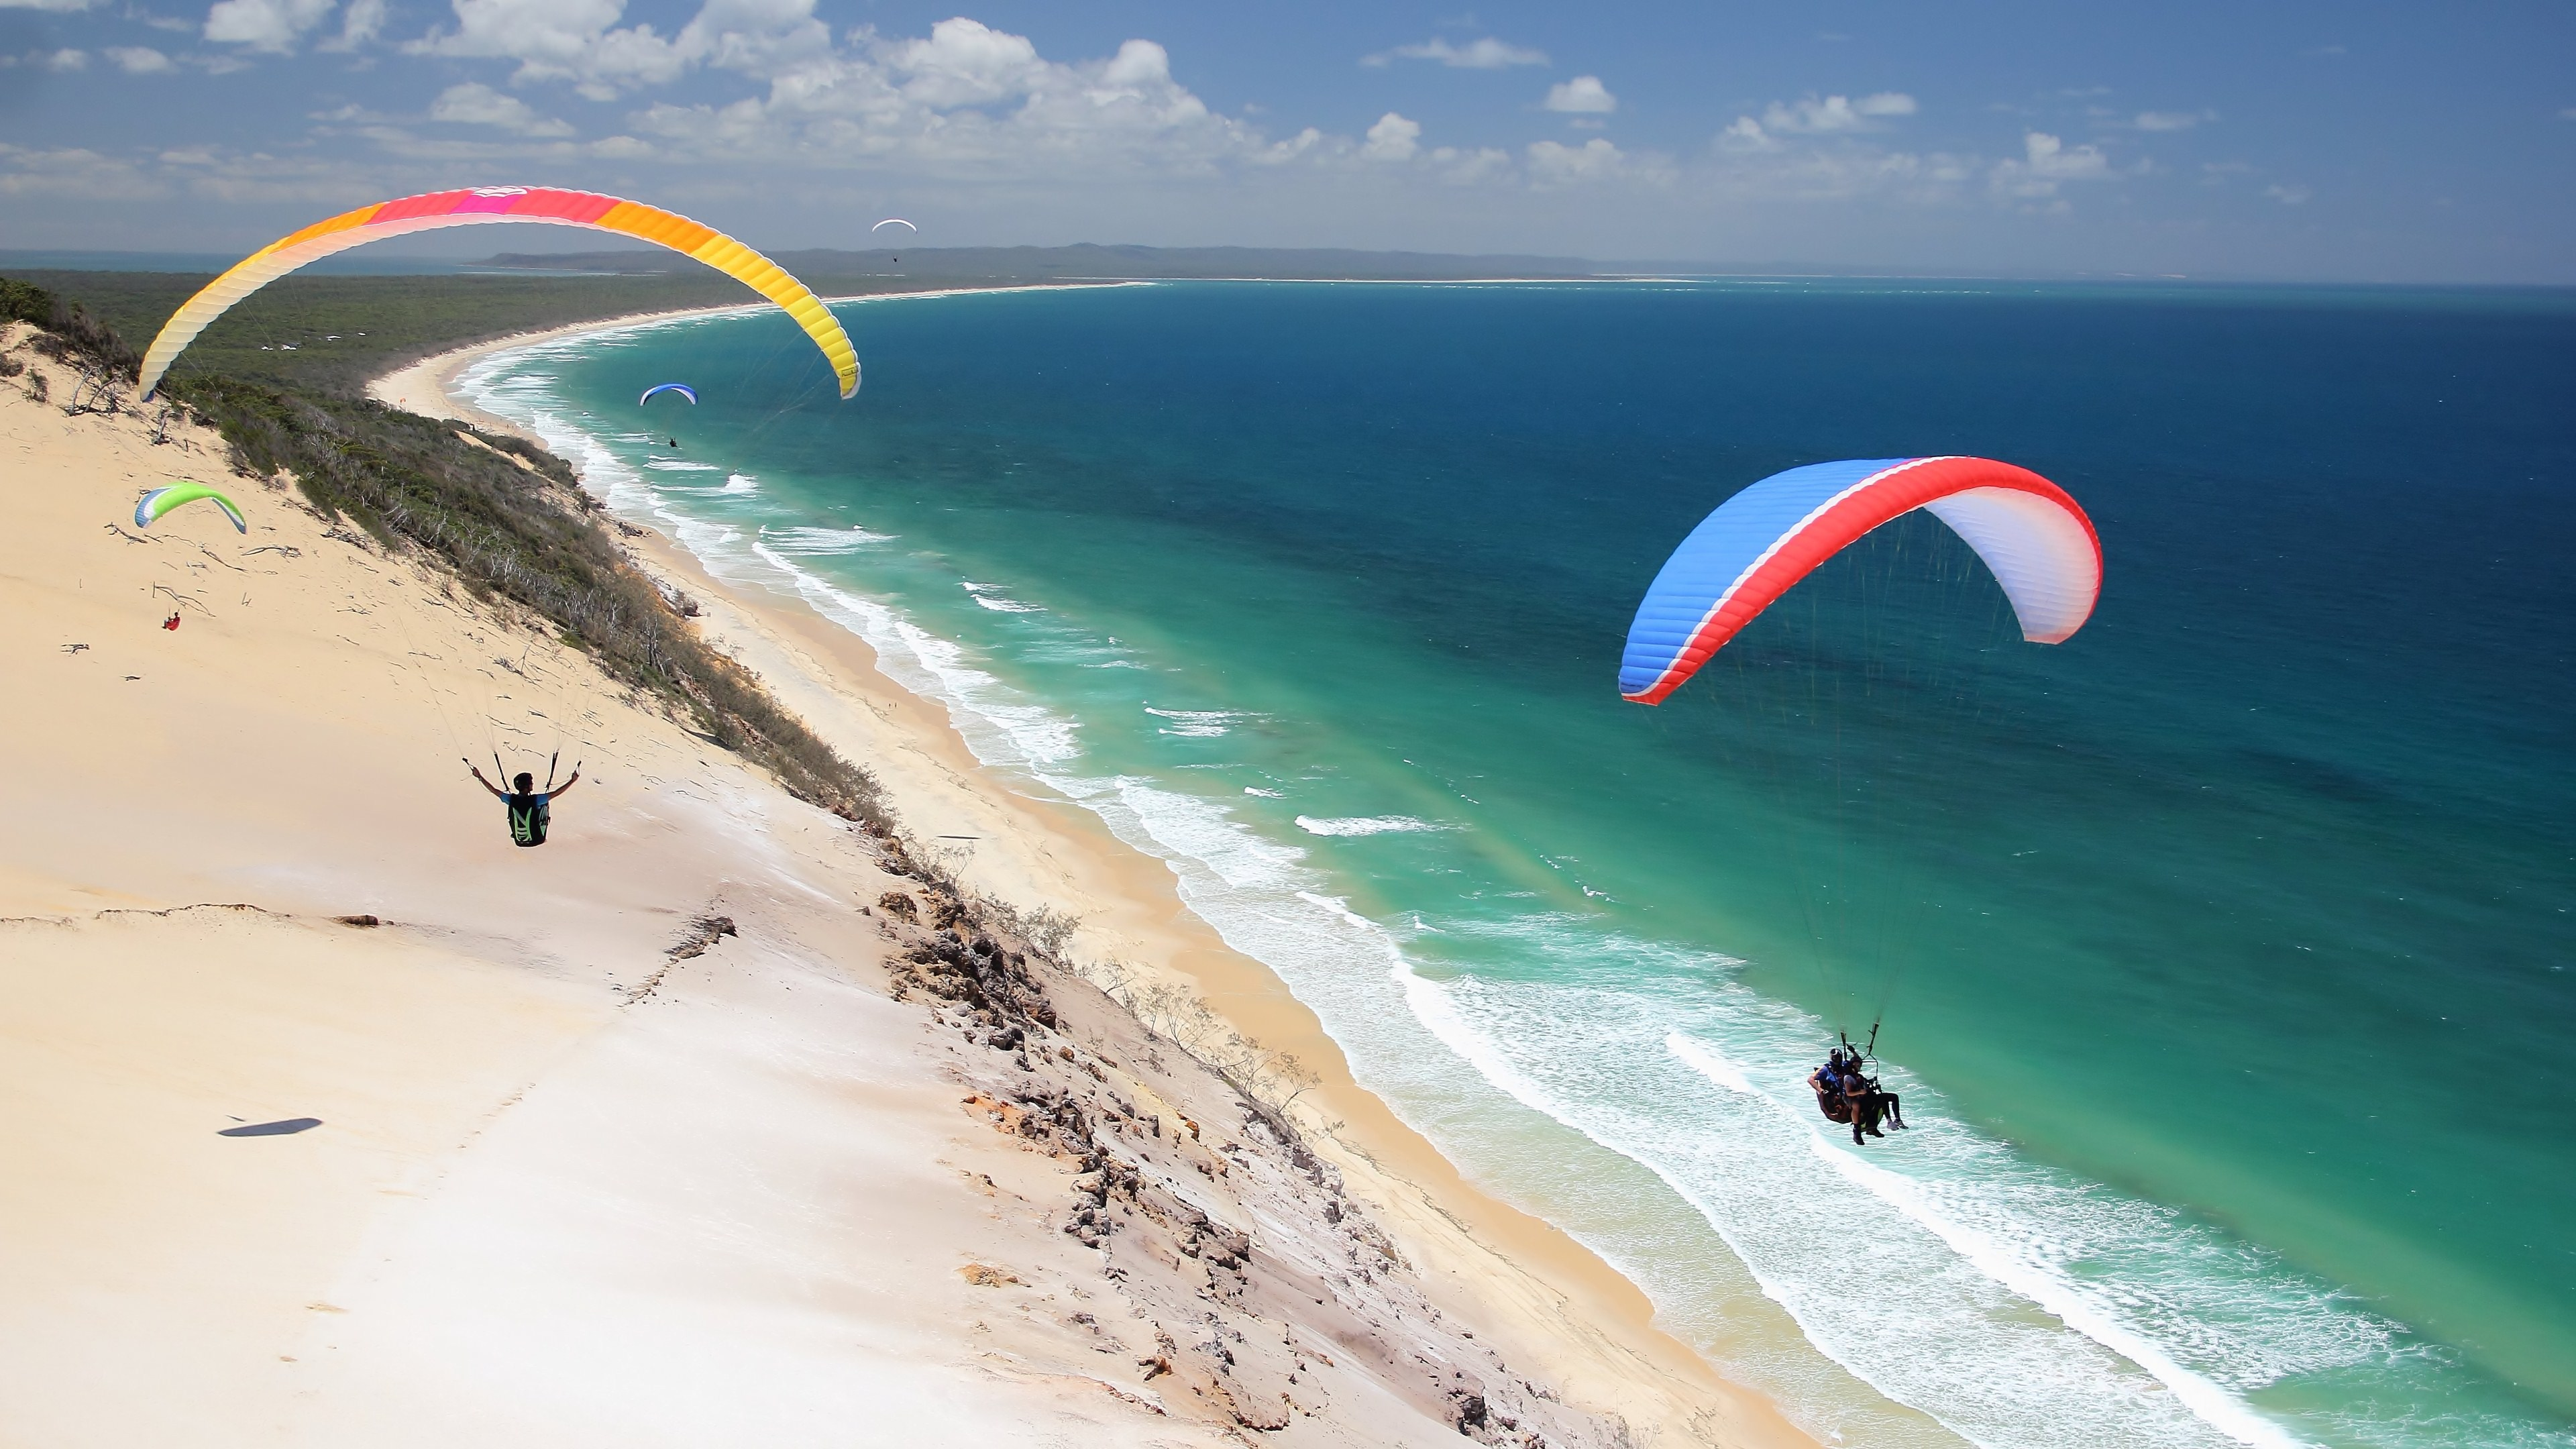 Paragliding 4k Ultra HD Wallpaper and Background ...